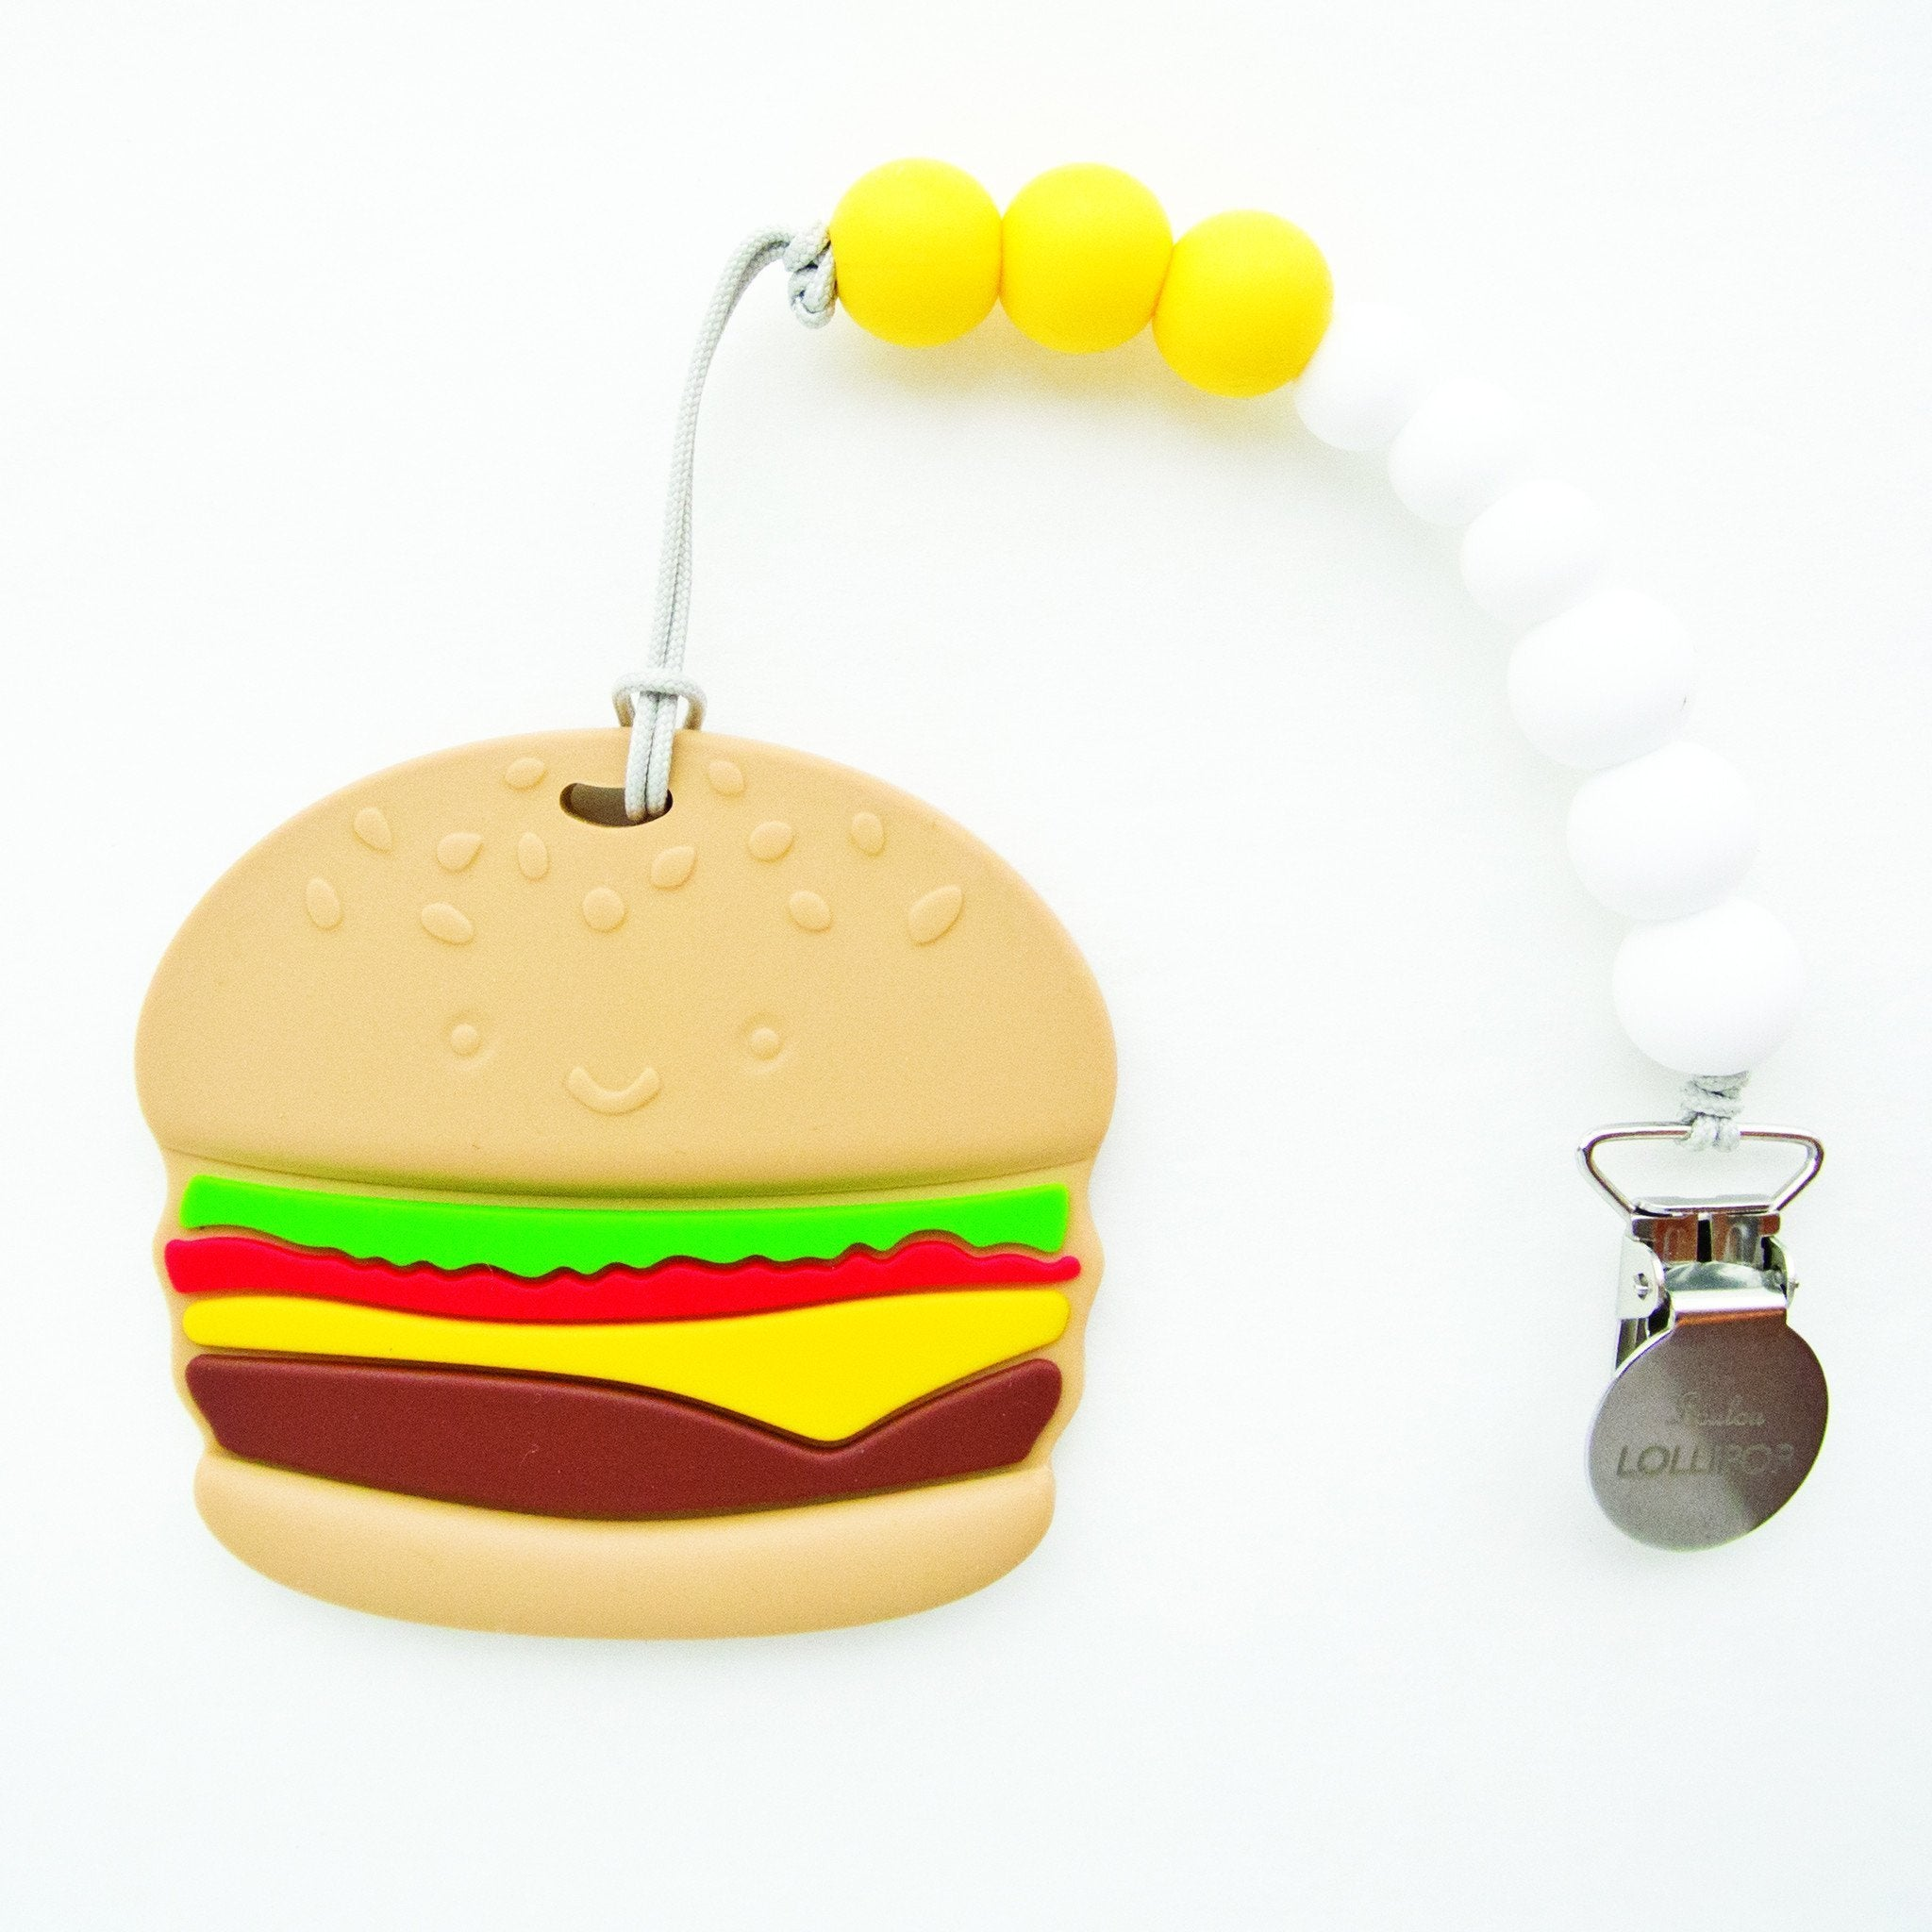 Loulou Lollipop Burger Teether with Holder Set